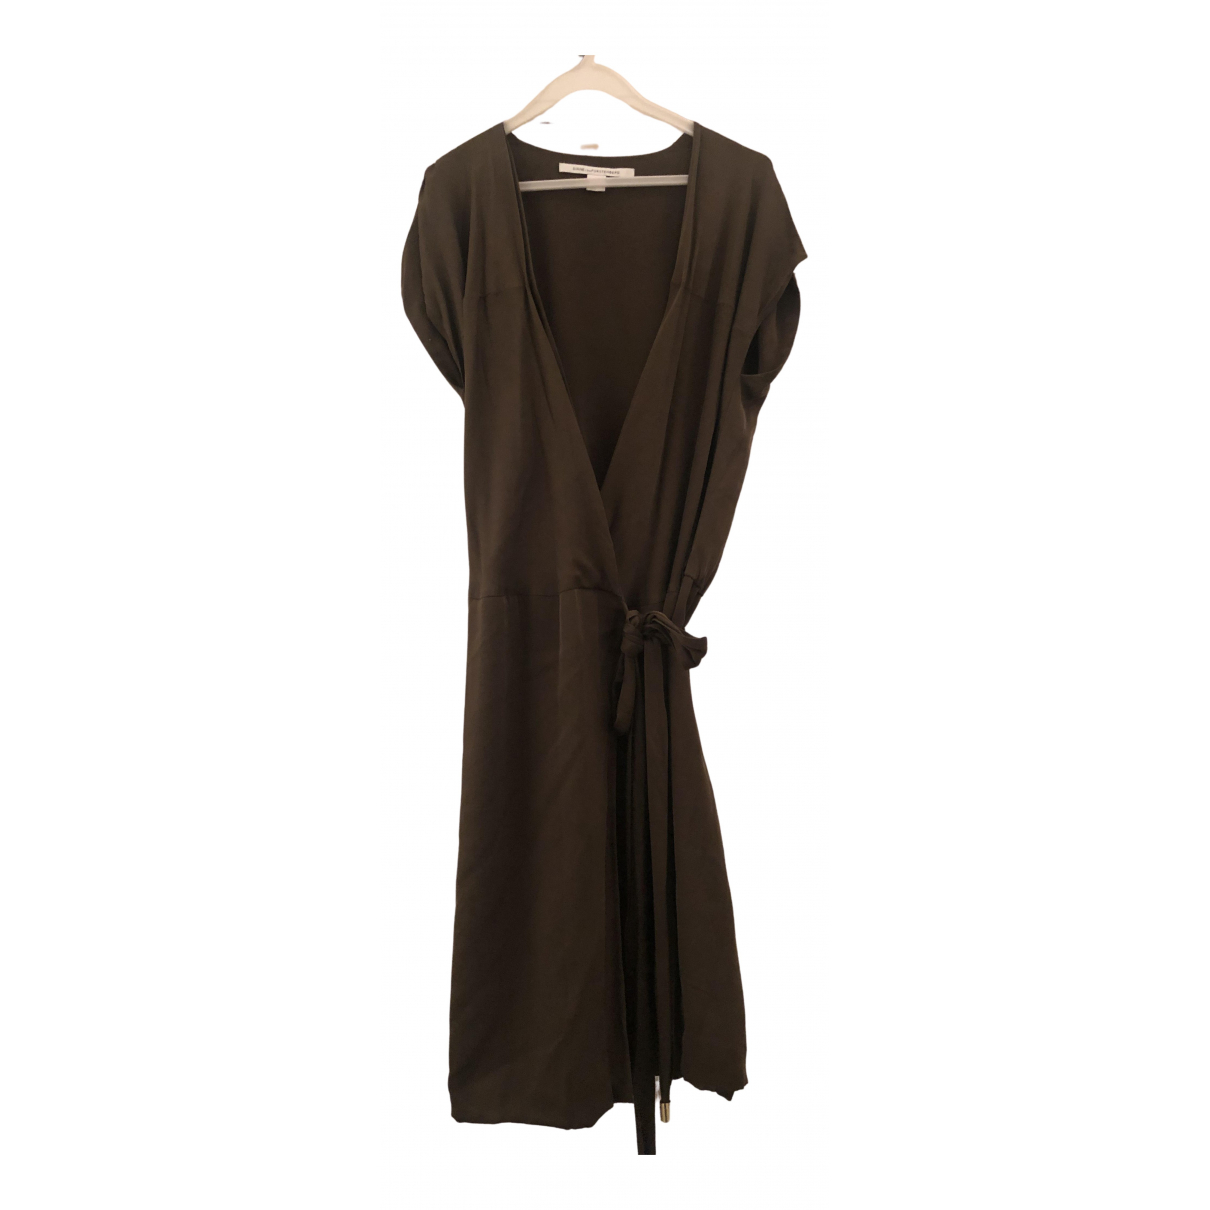 Diane Von Furstenberg N Khaki Silk dress for Women 2 US